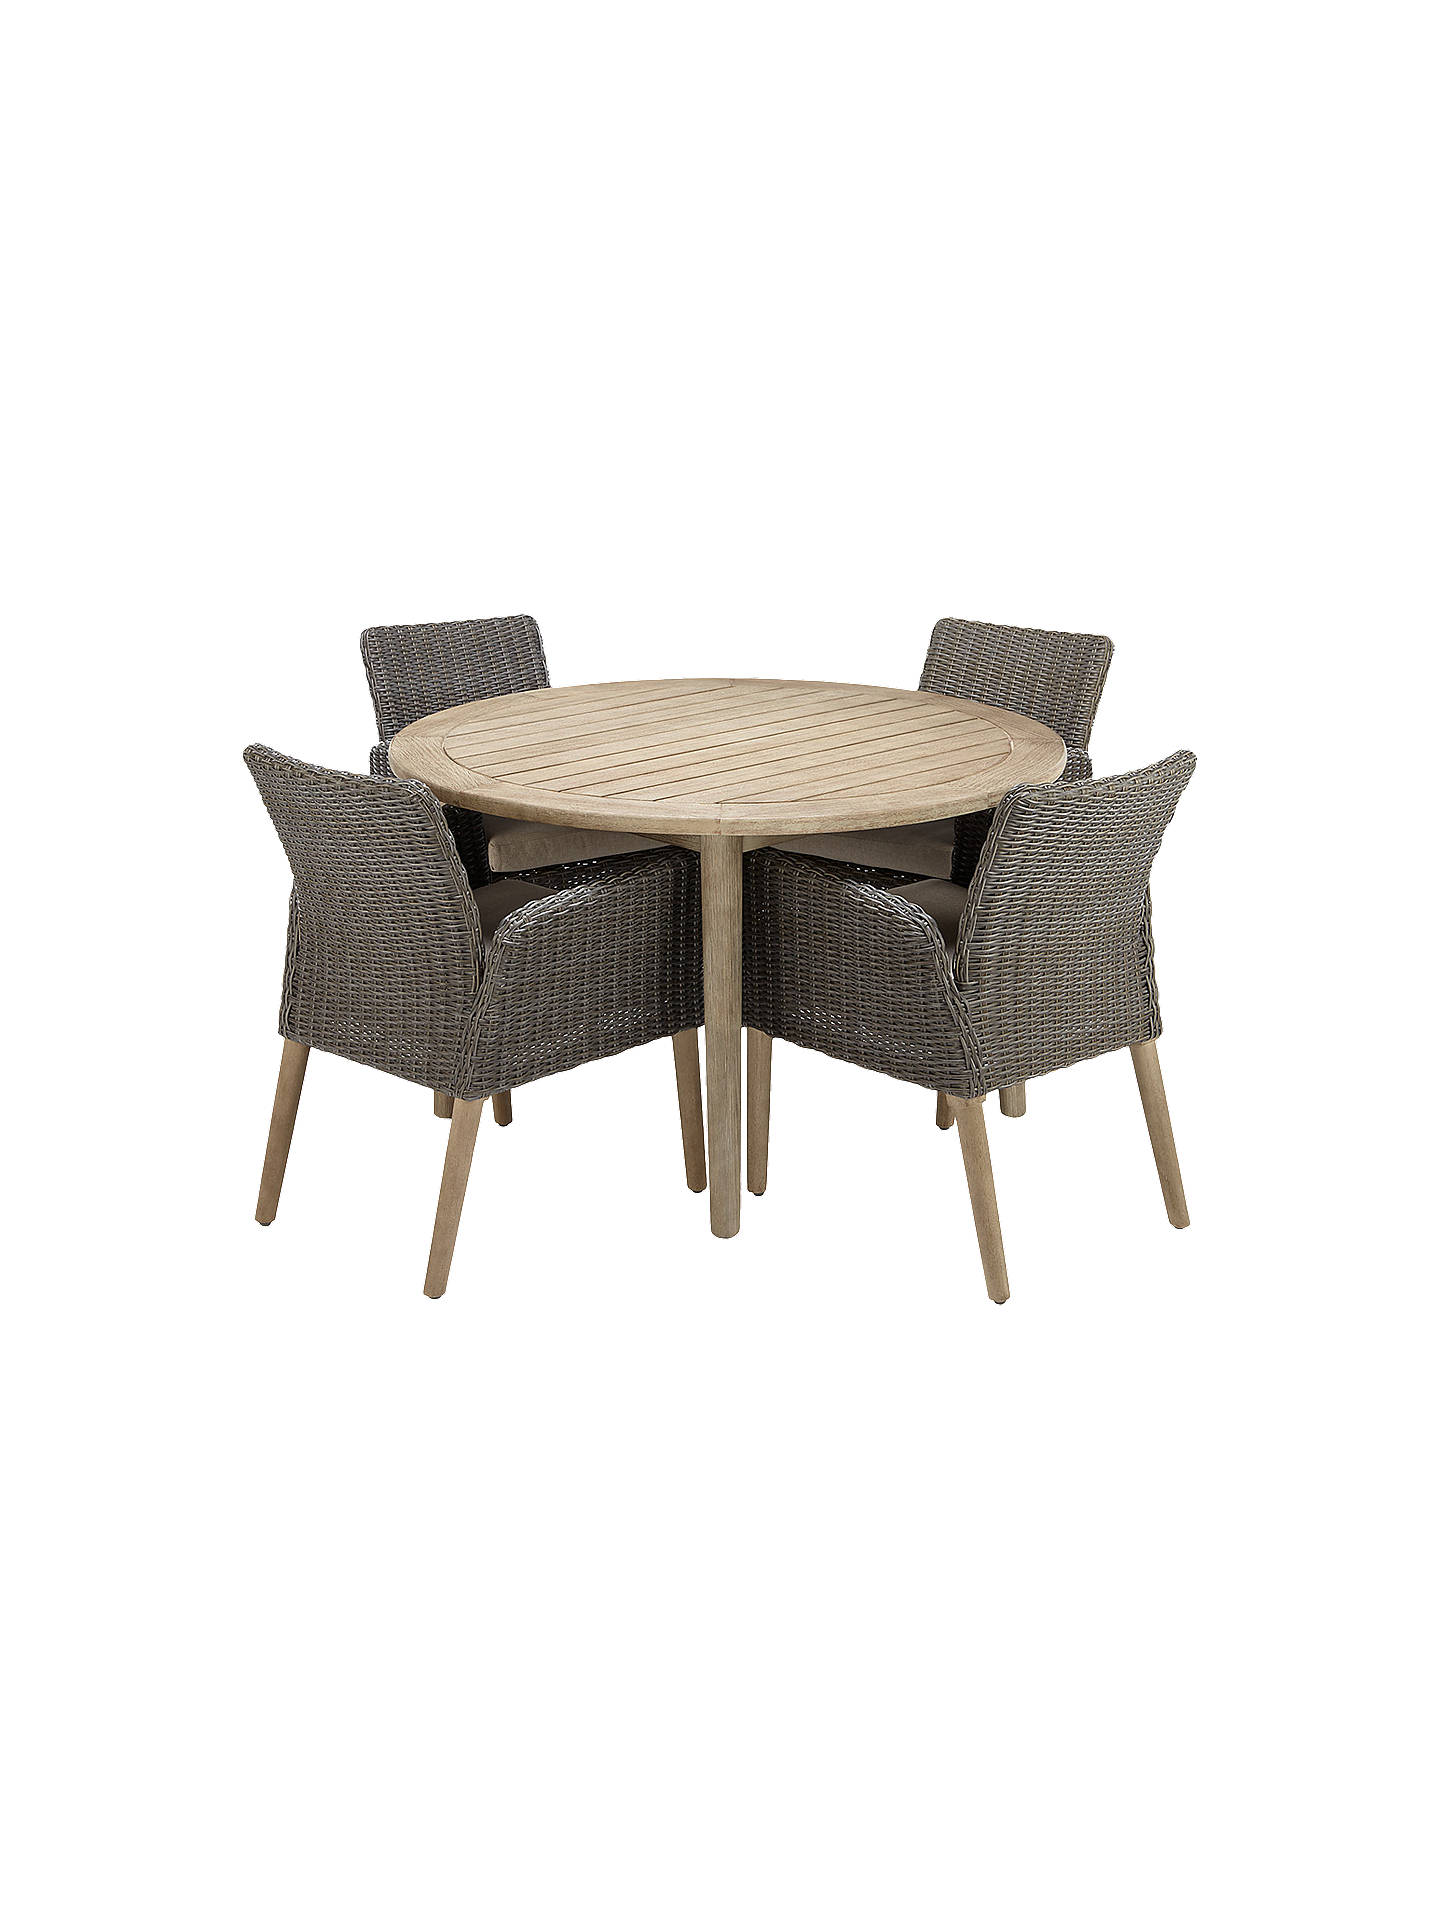 John Lewis Partners Eden 4 Seater Outdoor Round Dining Table And